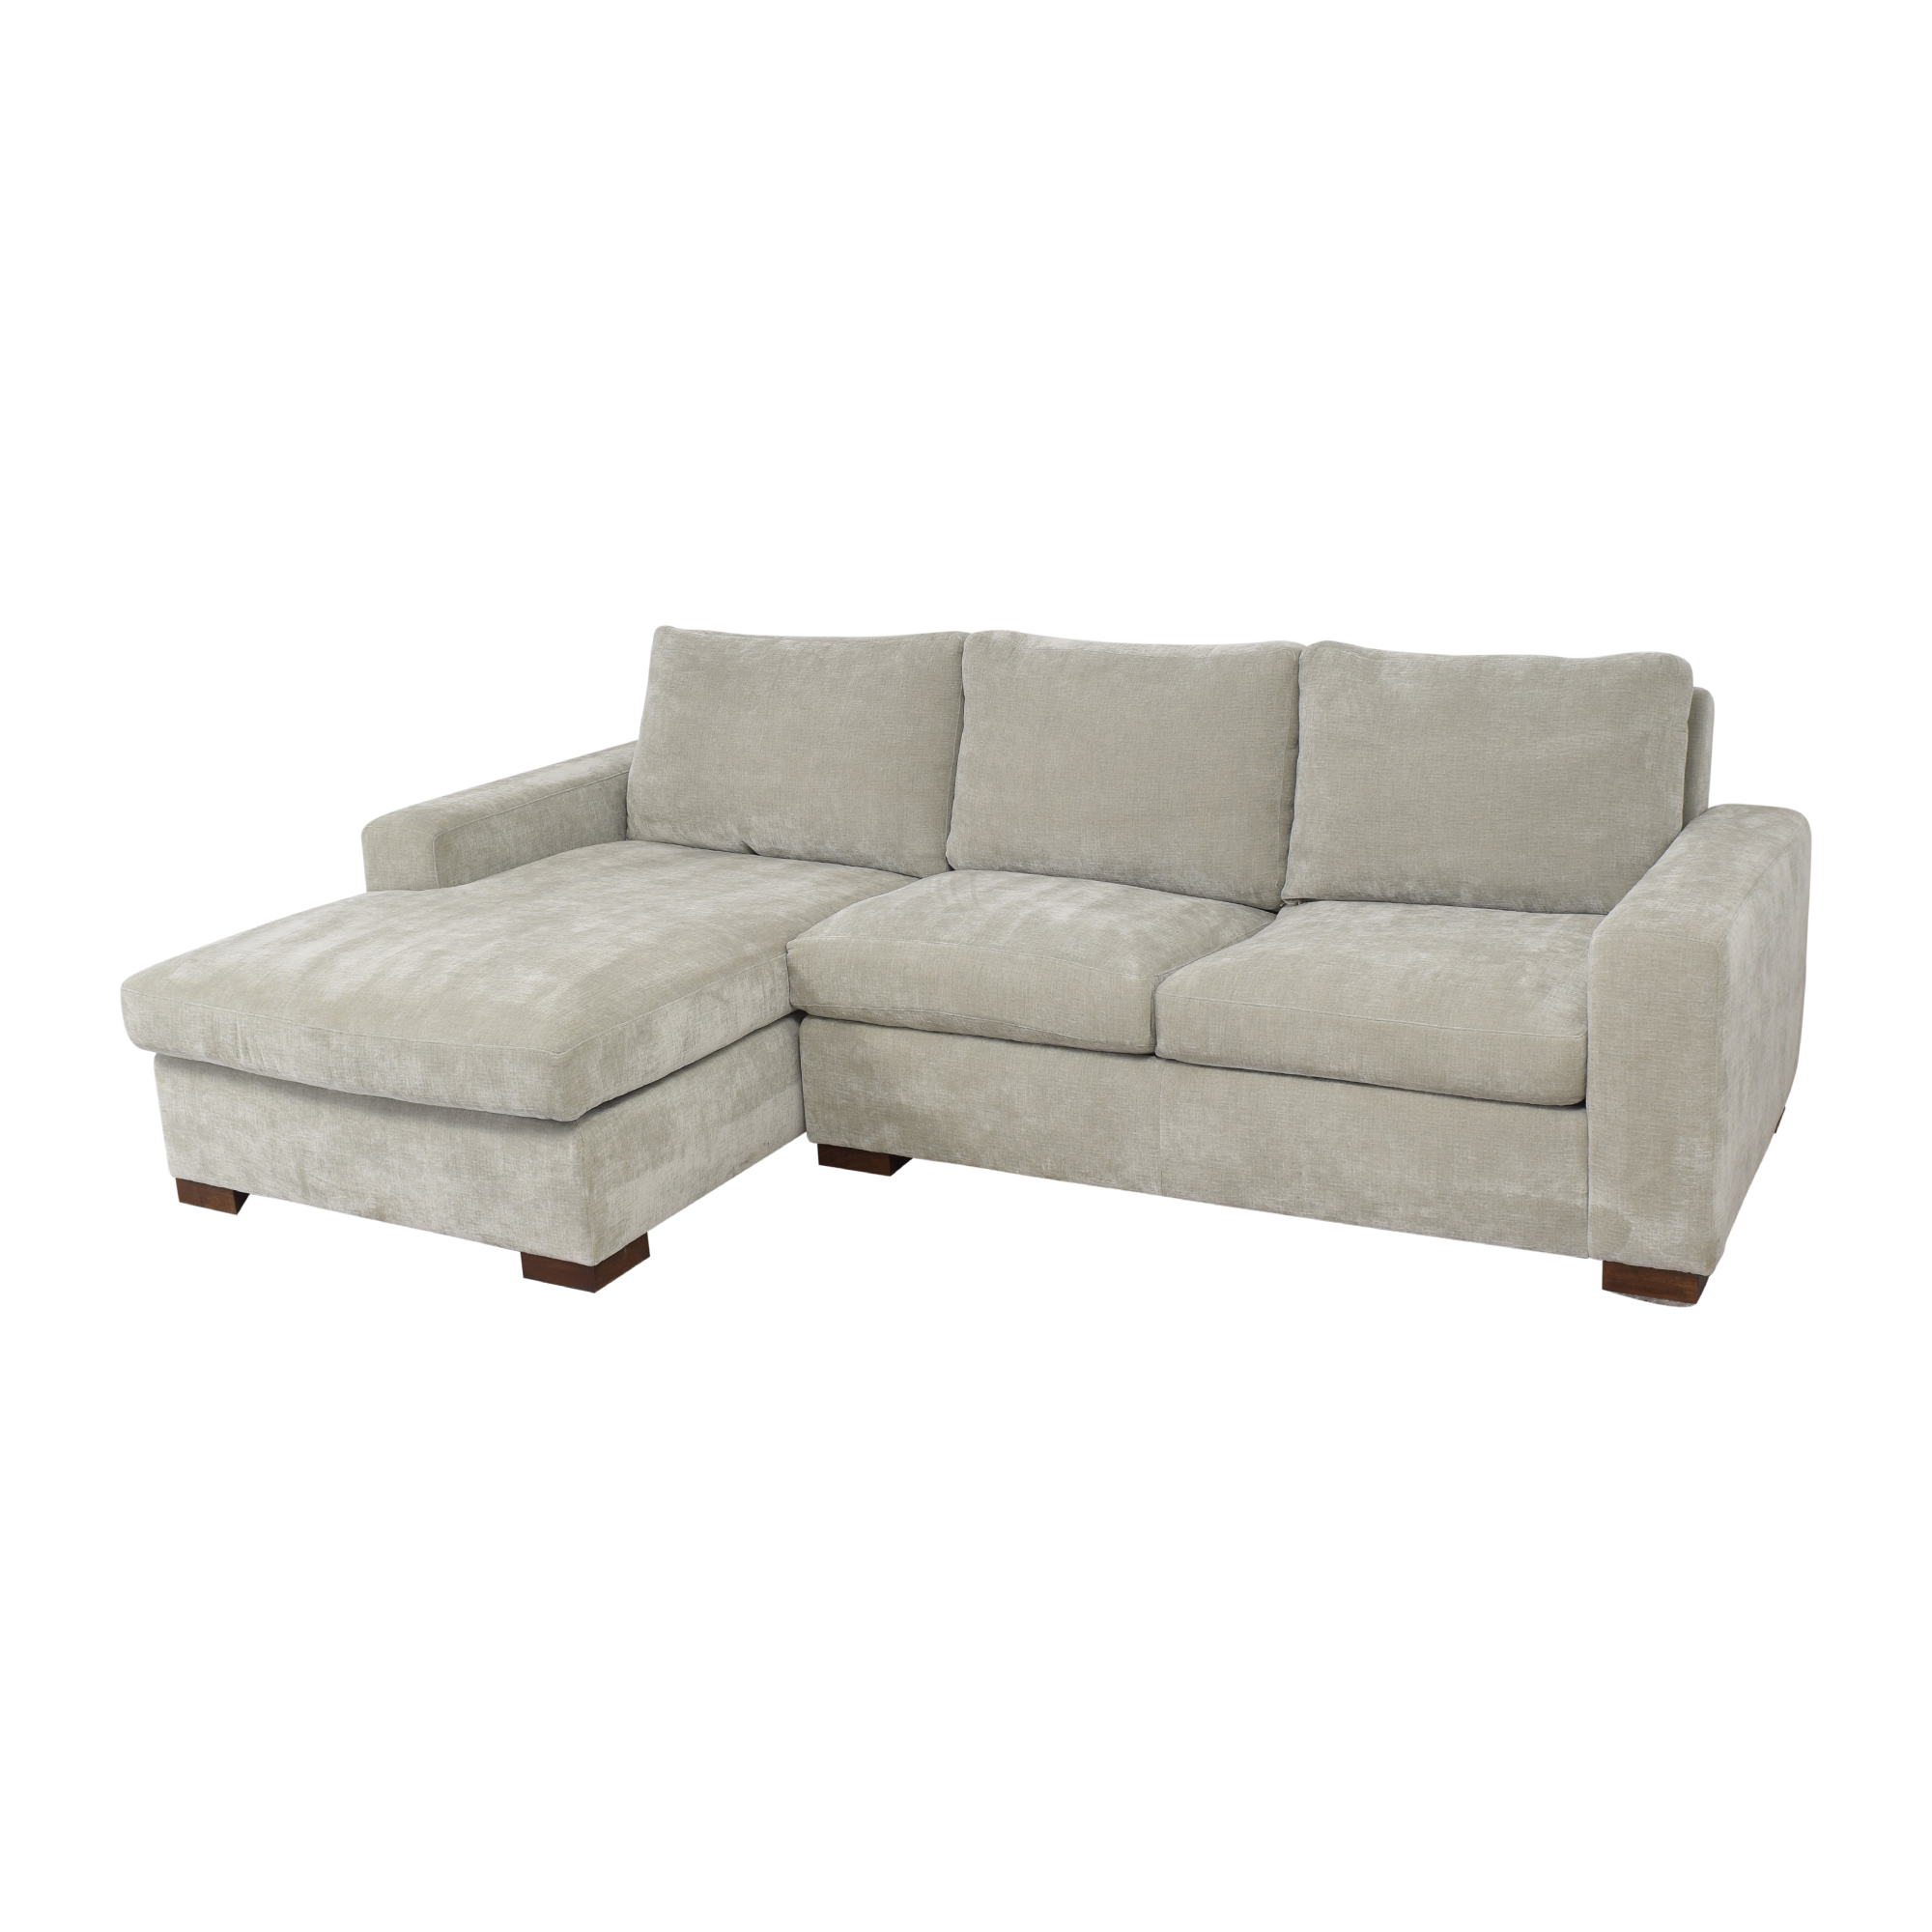 BenchMade Modern Couch Potato Sofa With Chaise BenchMade Modern